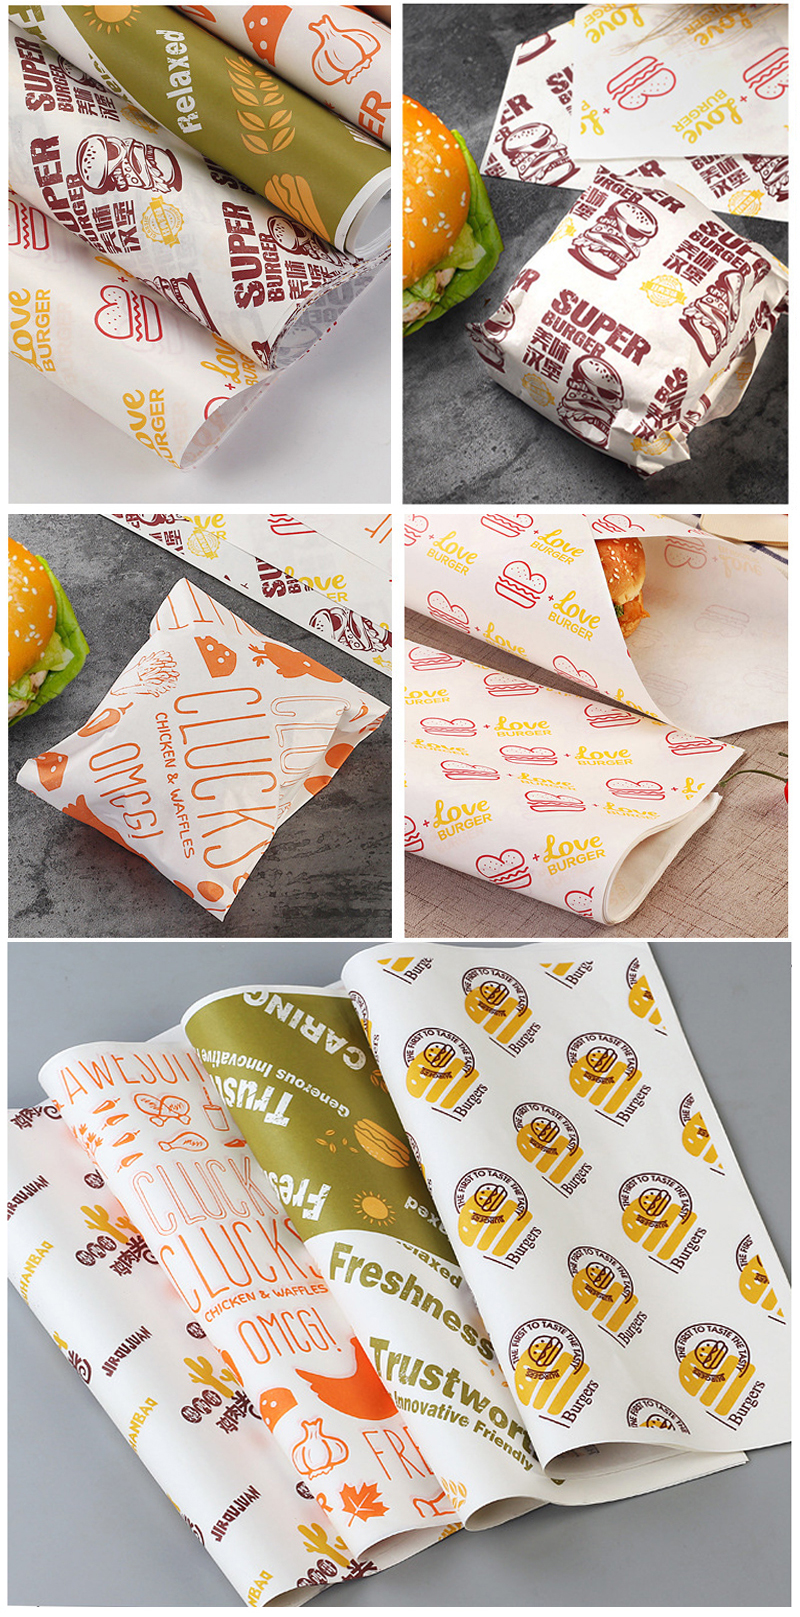 Custom printed logo reusable food sandwich wrapper  burger packaging wax paper custom shawarma wrapping paper